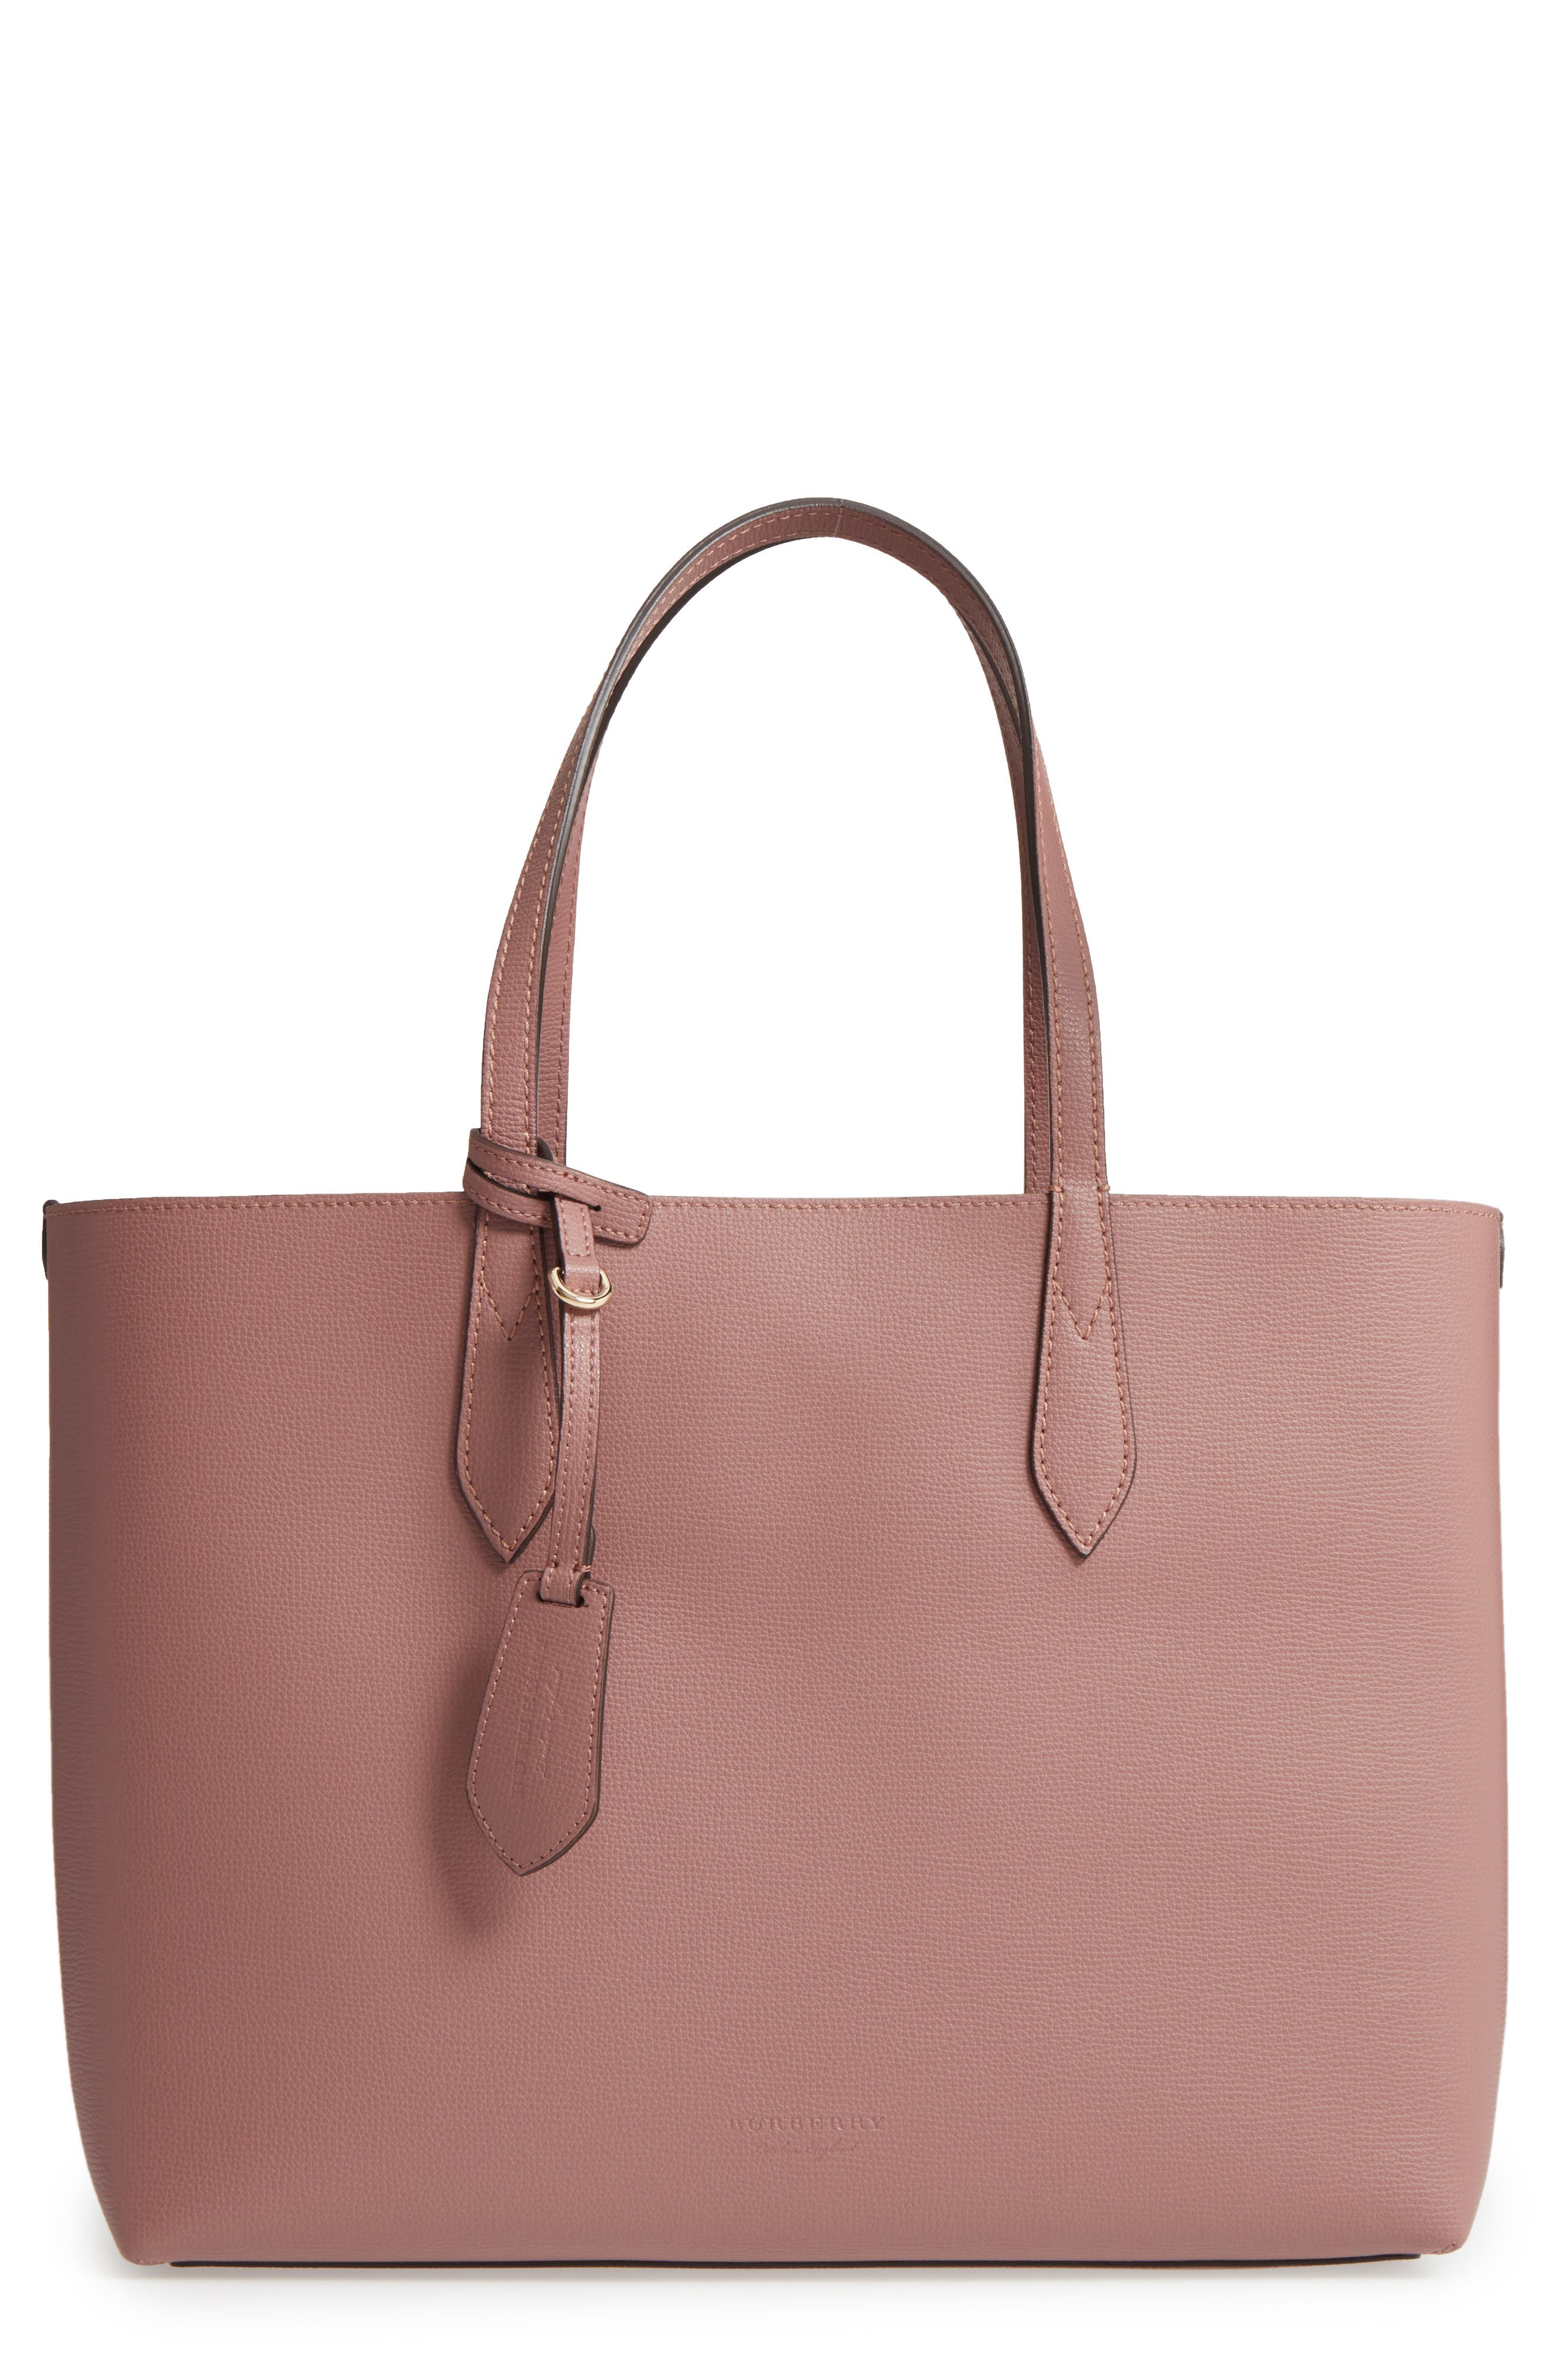 Designer Totes for Women | Nordstrom